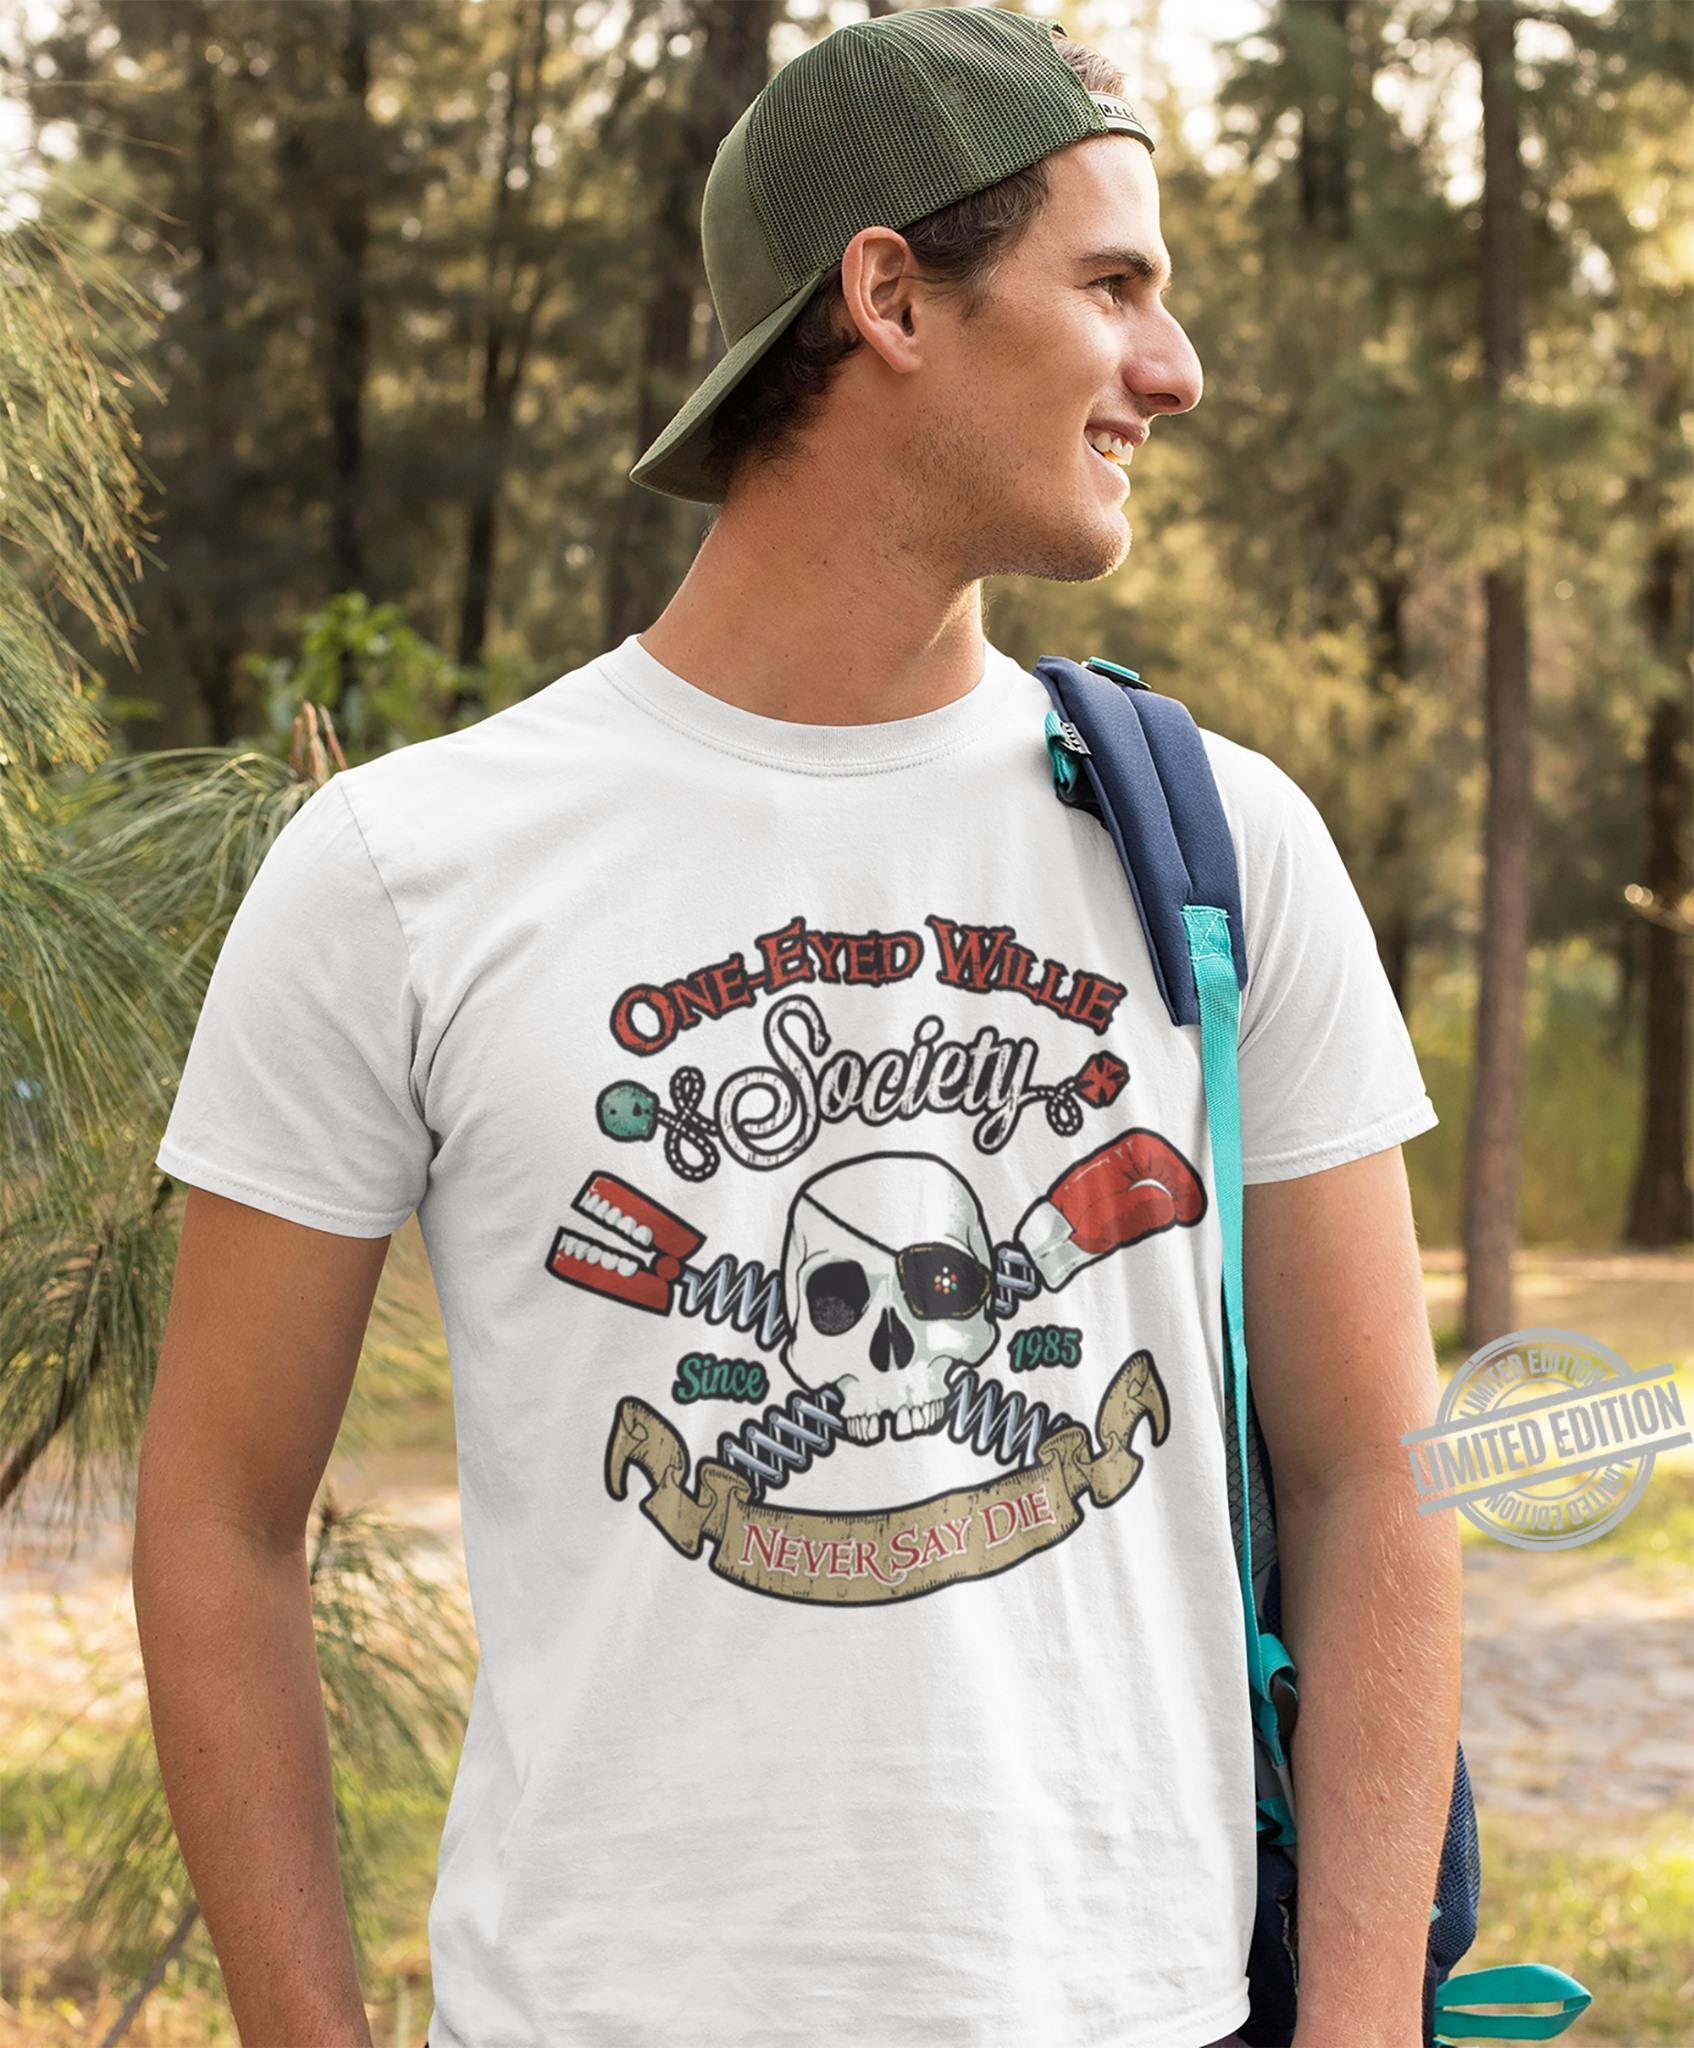 One-Eyed Willie Society Never Say Die Shirt